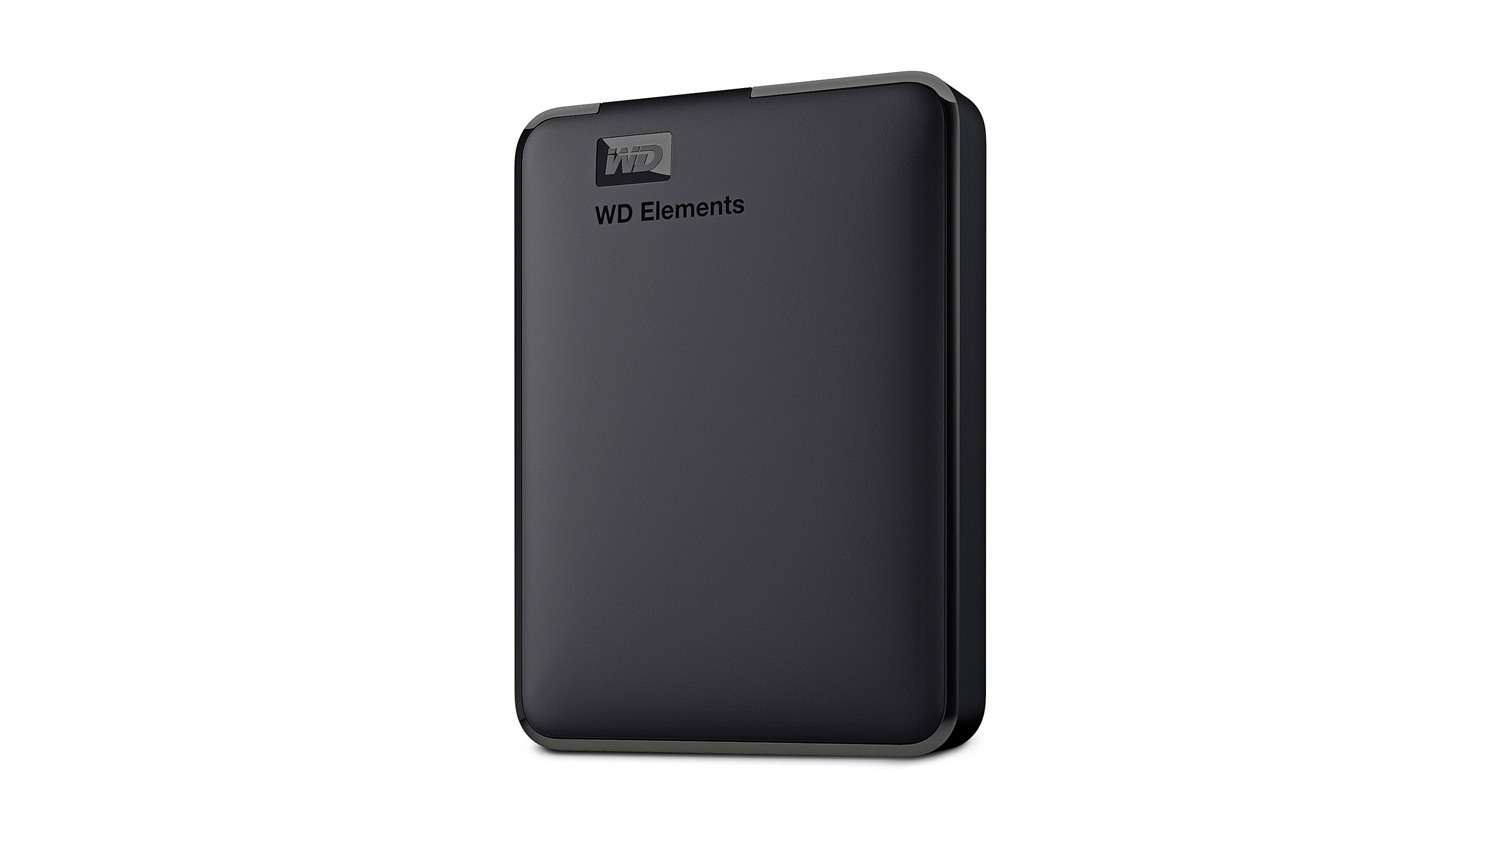 WD Elements USB 3.0 Portable Hard Drive - right angle